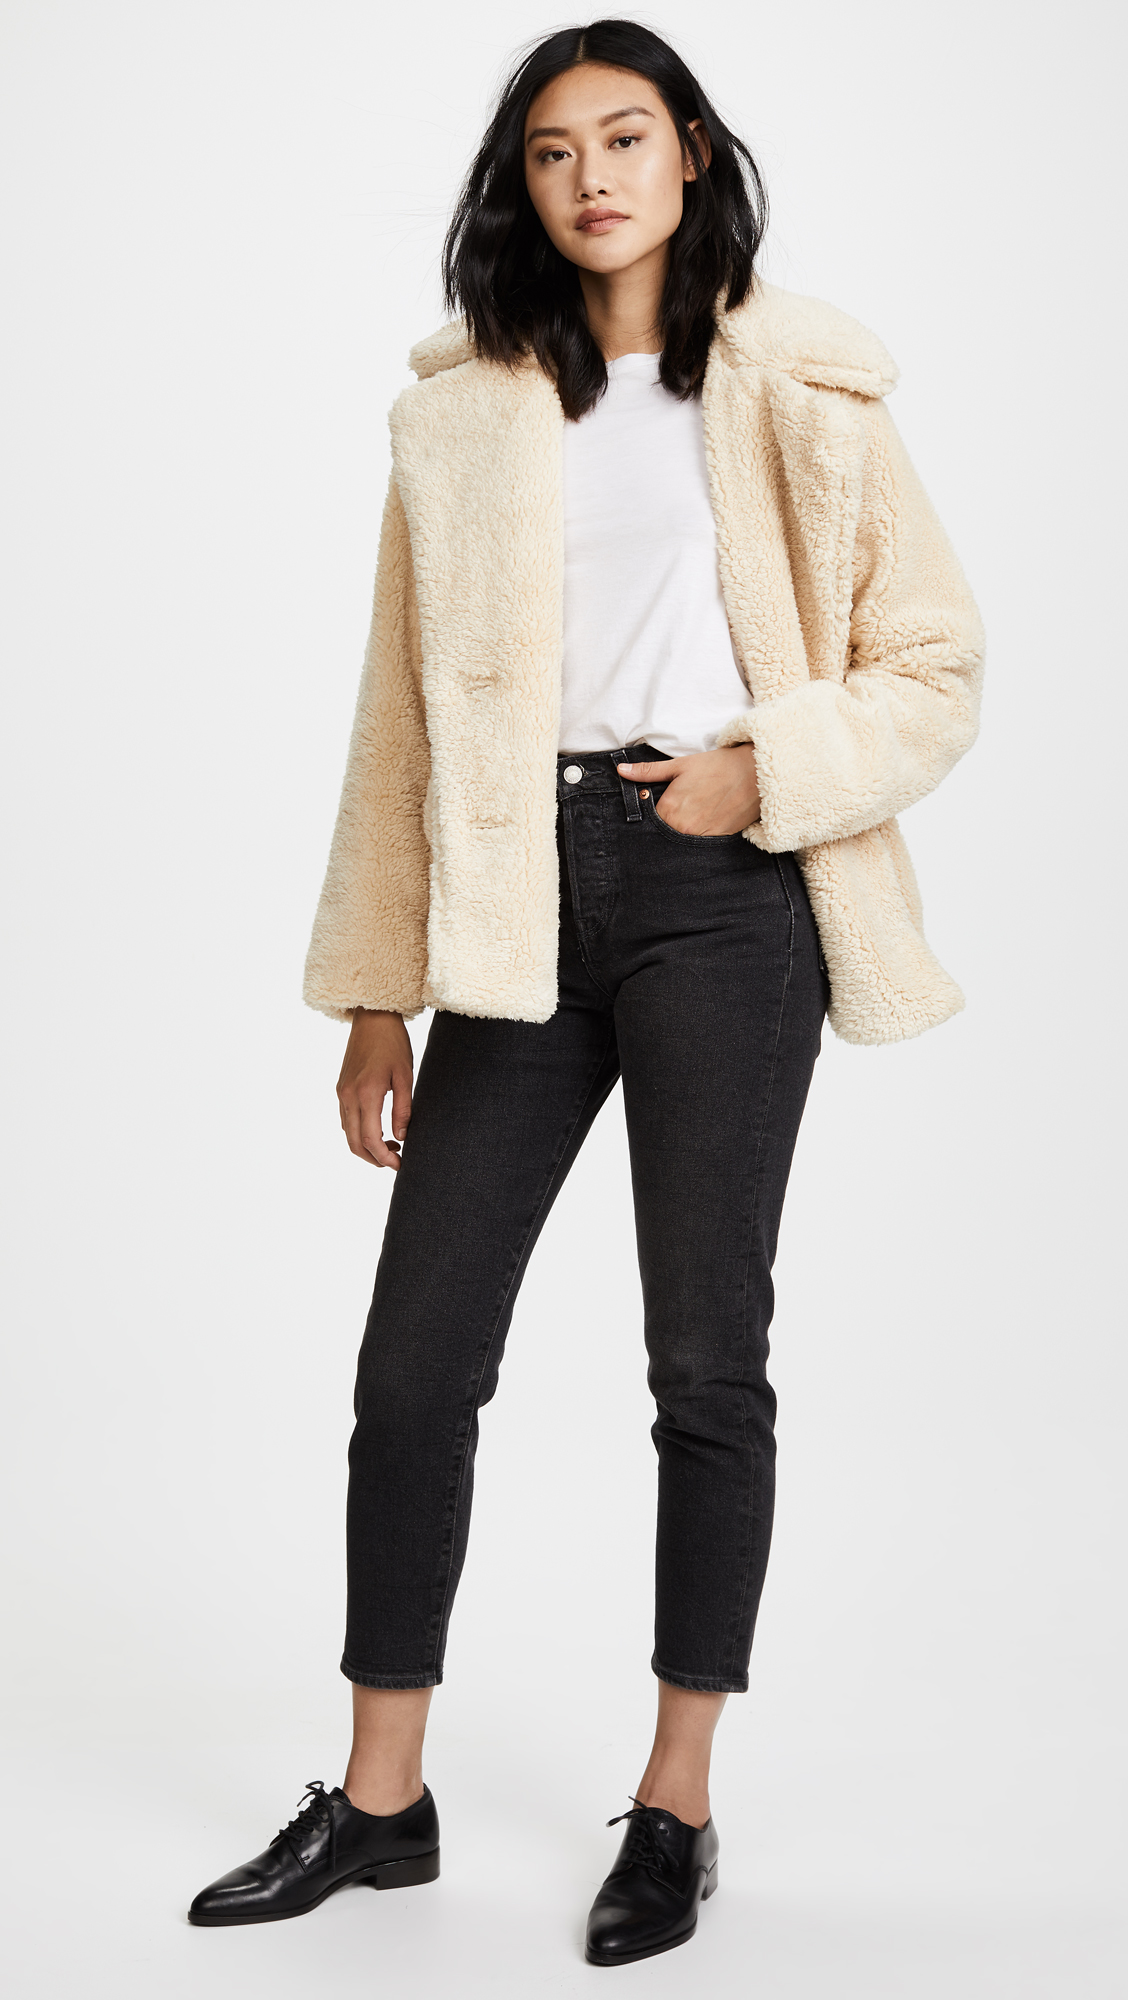 91a39bca246a Free People Notched Teddy Pea Coat